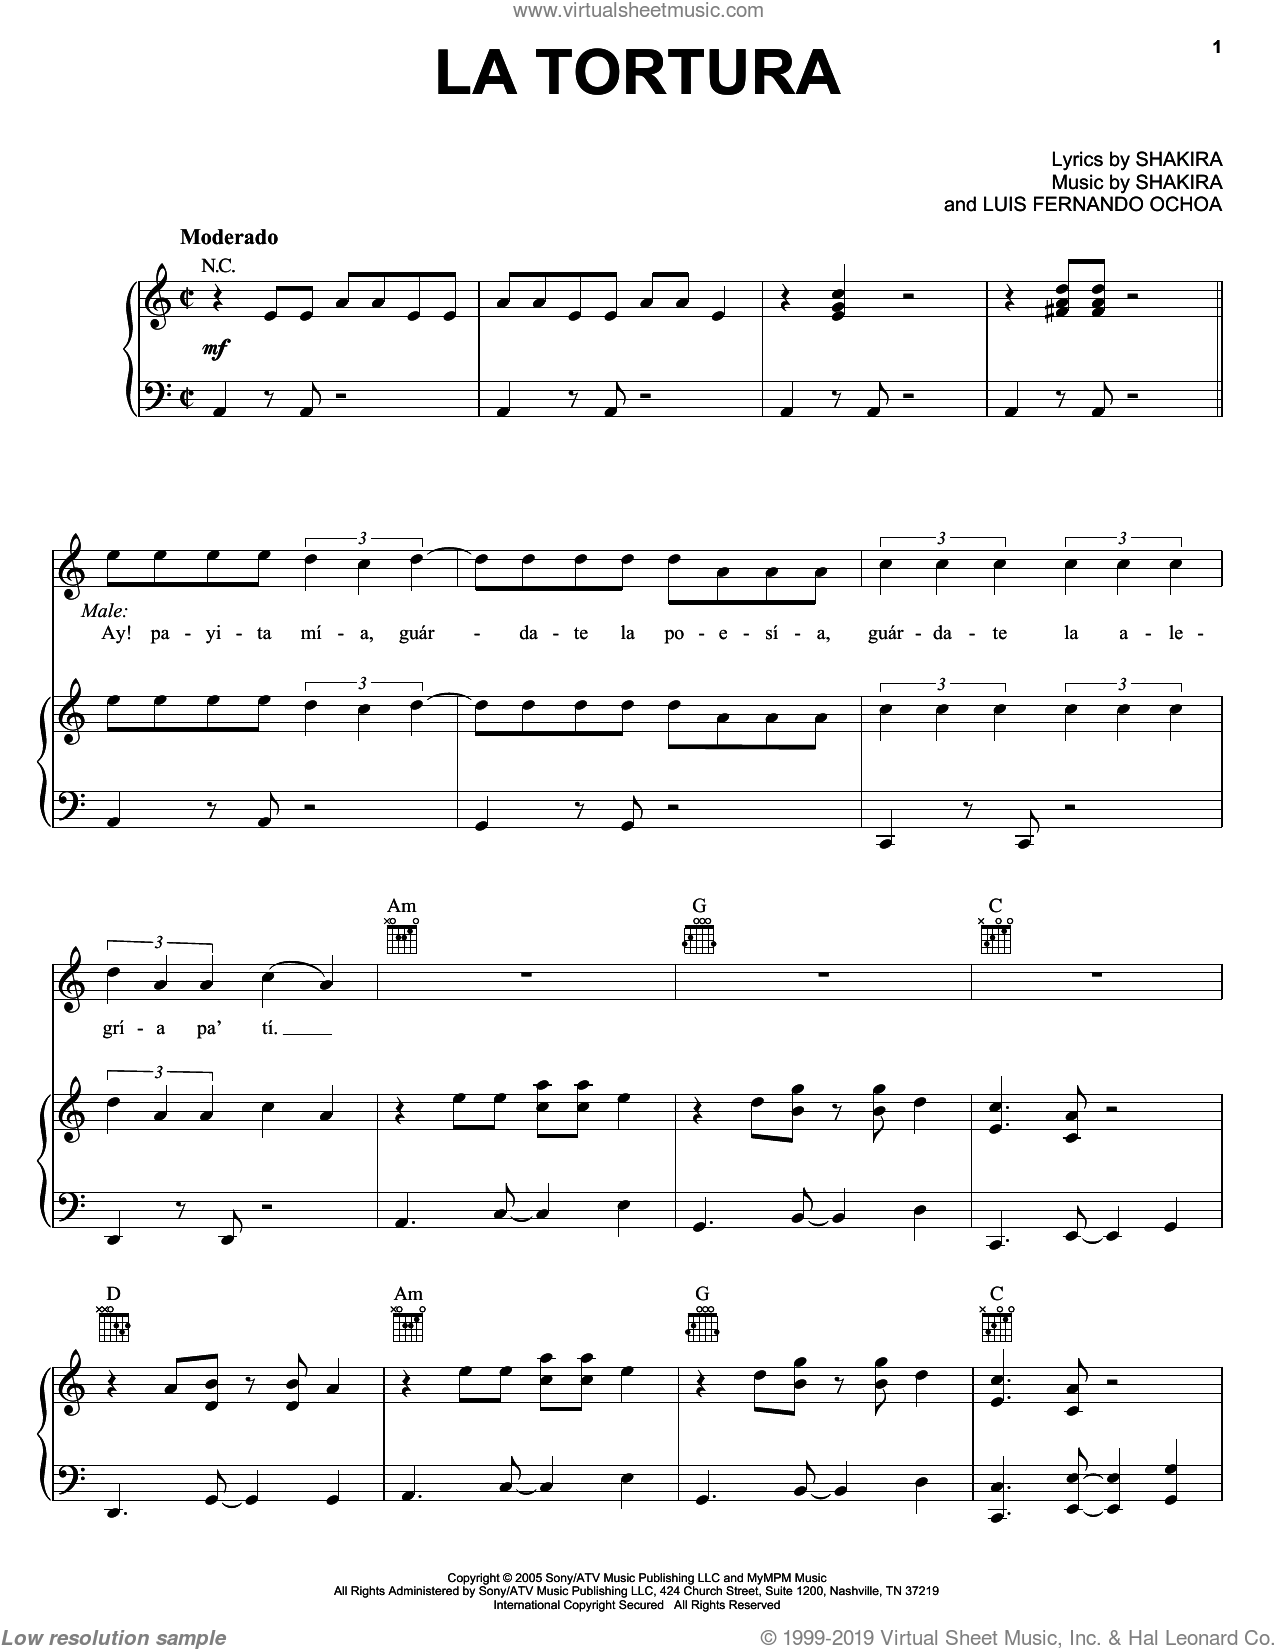 La Tortura sheet music for voice, piano or guitar by Luis Fernando Ochoa